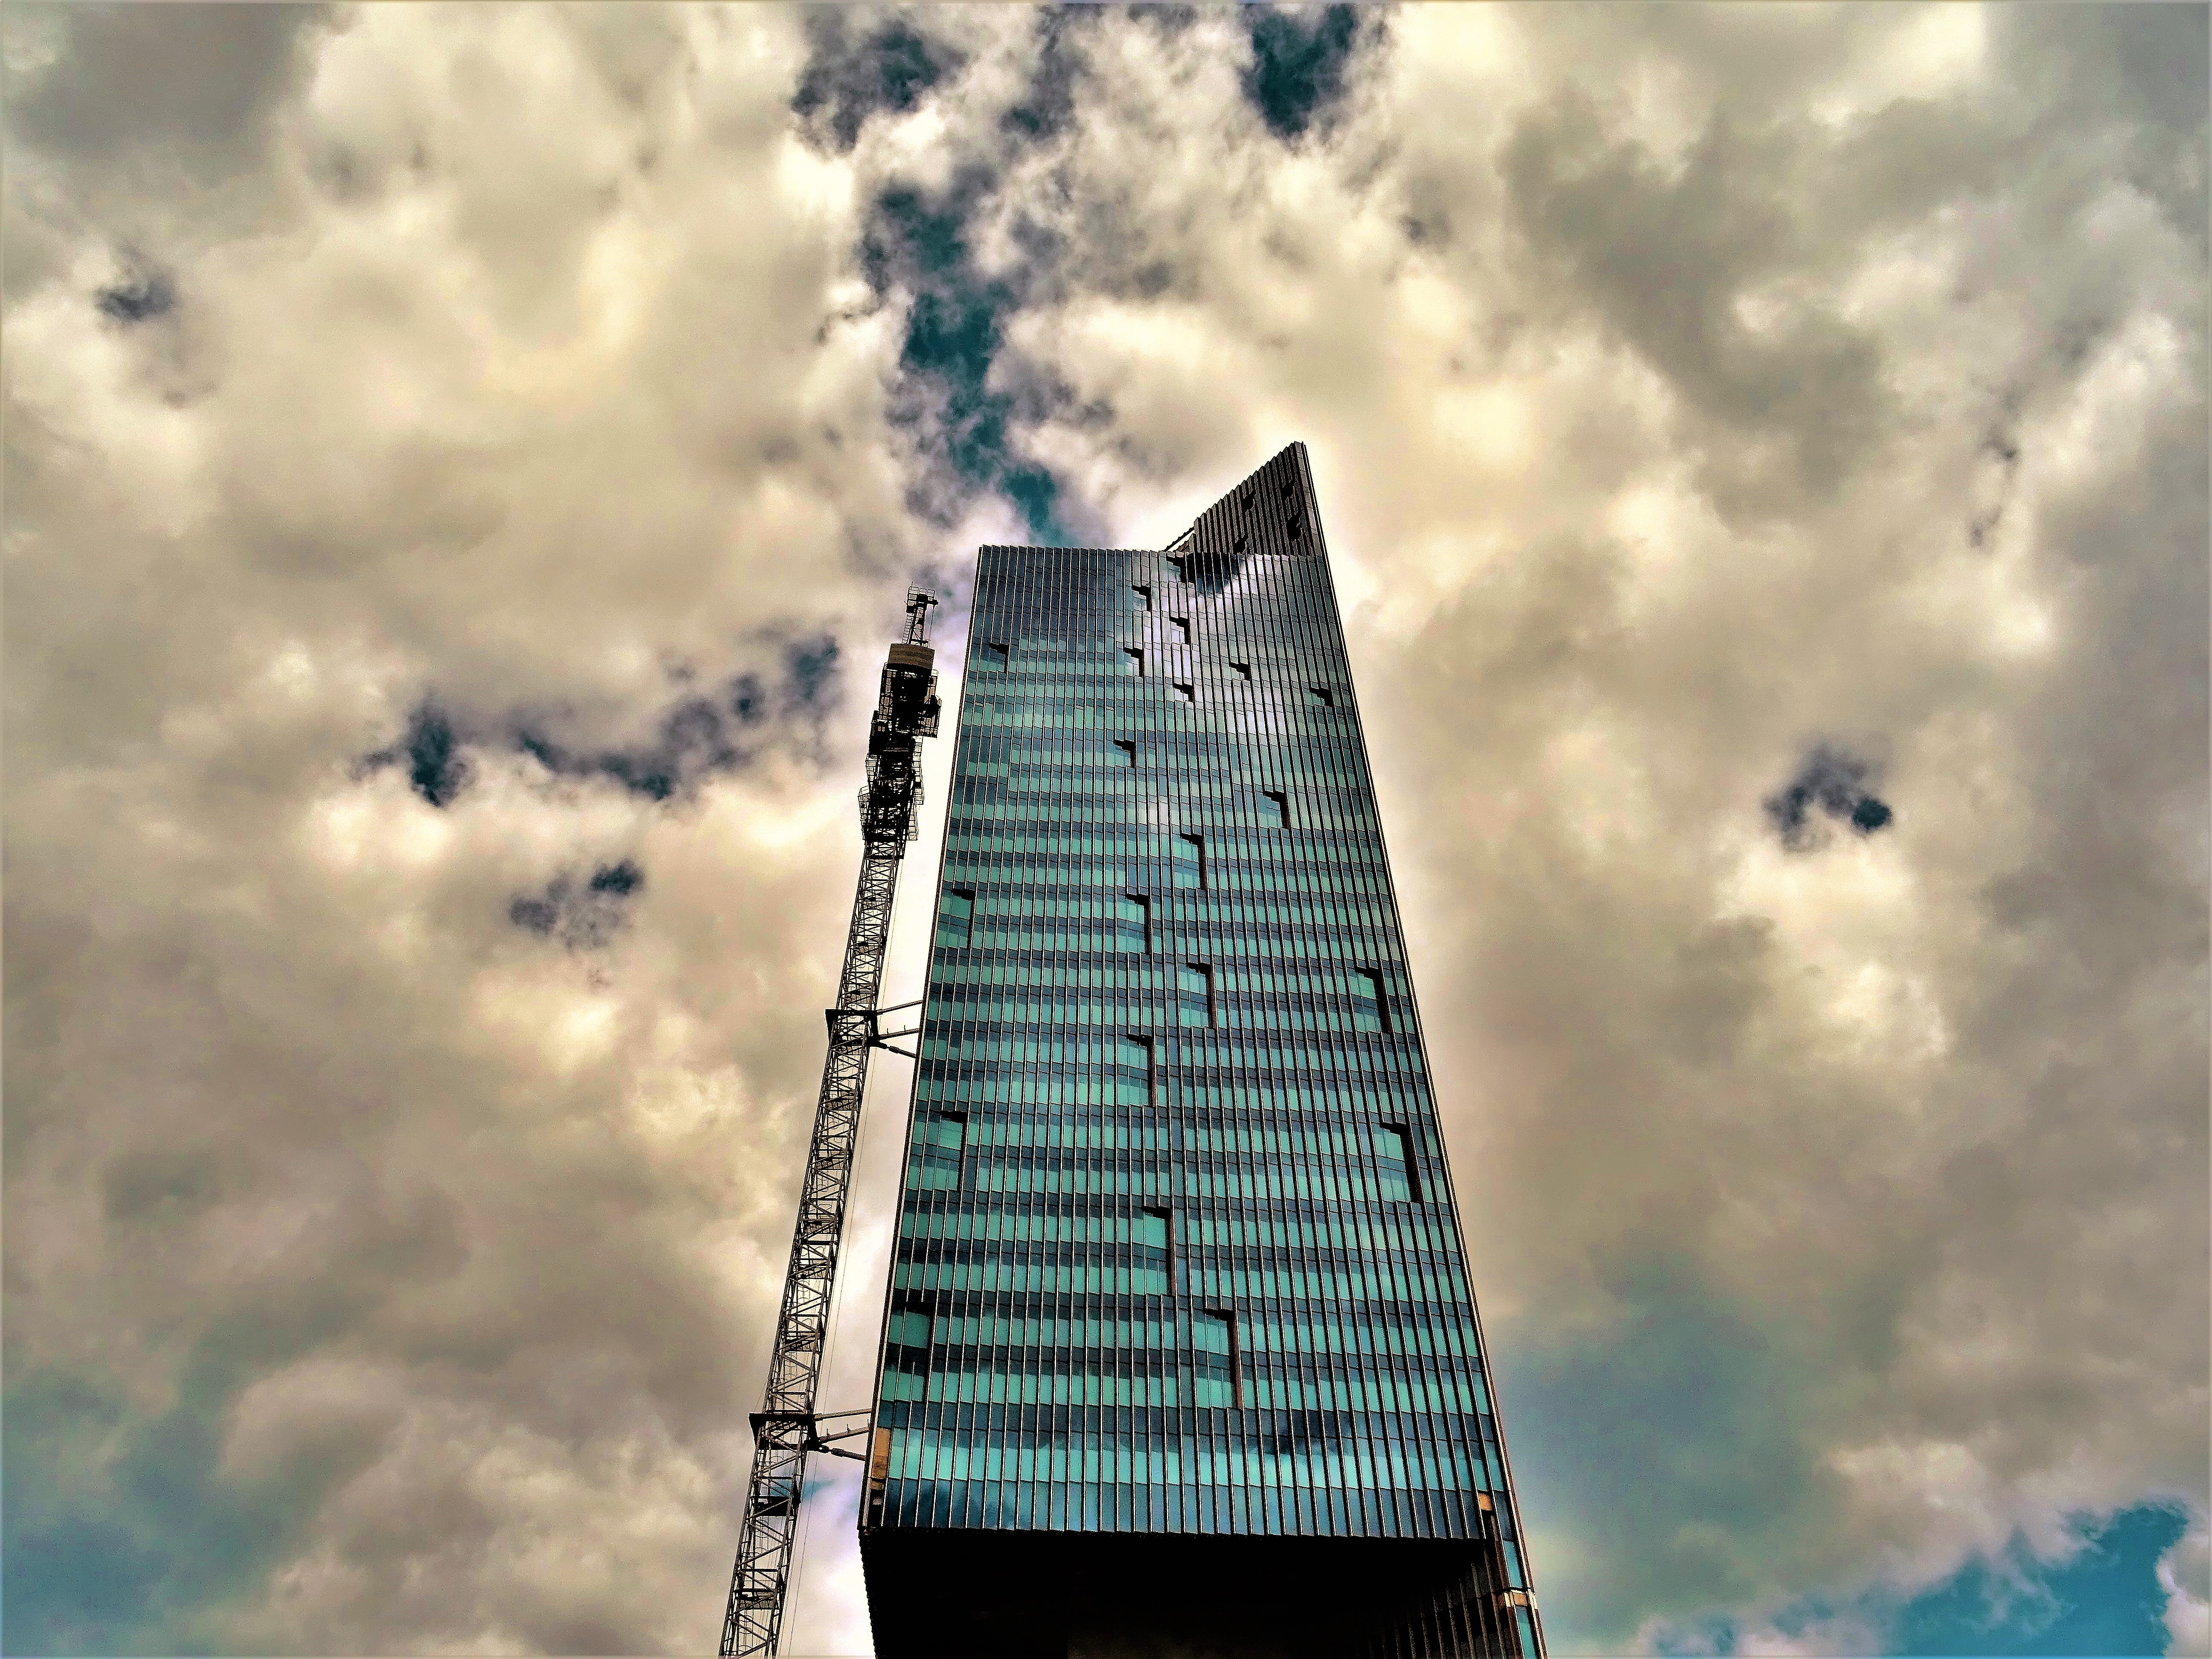 Black High-rise Building With White Clouds, Perspective, Urban, Travel, Tower, HQ Photo